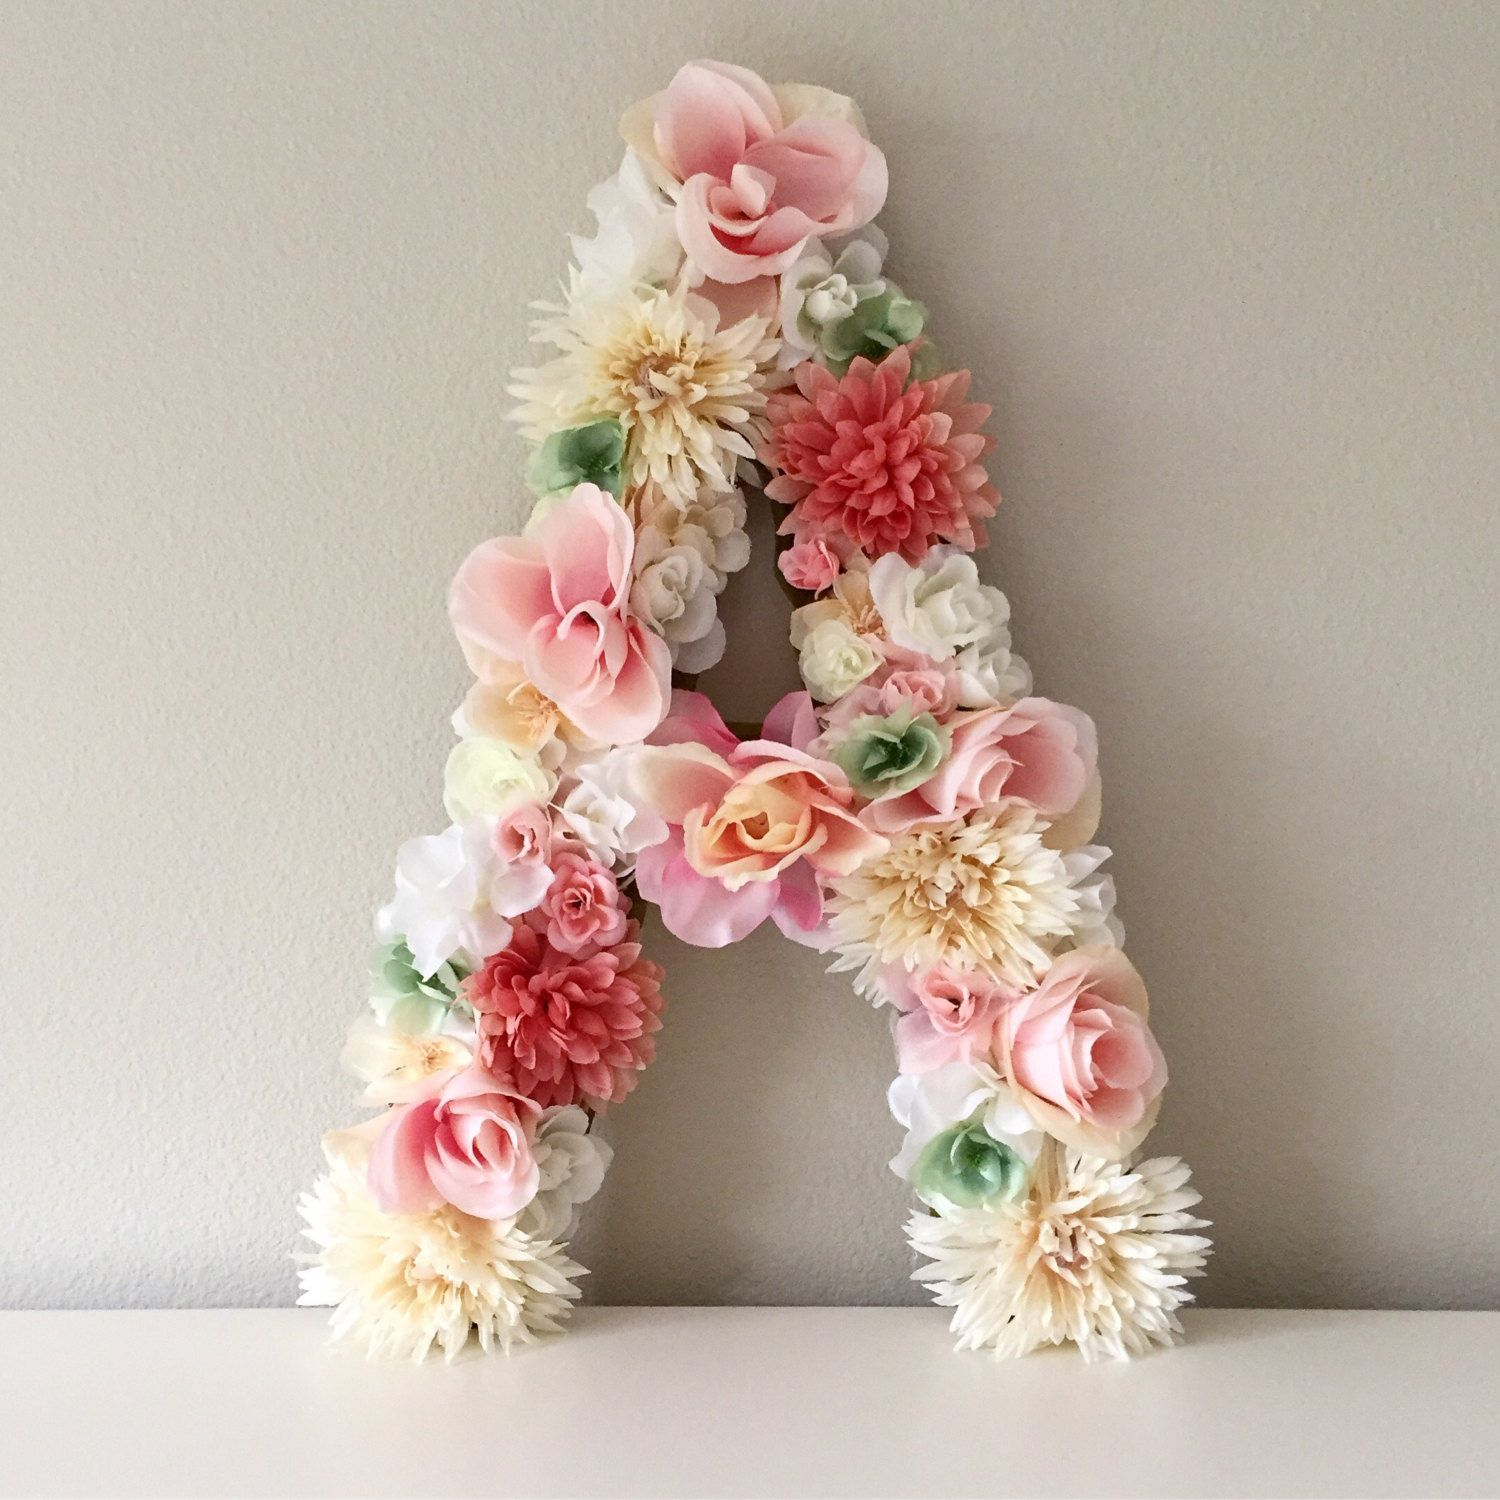 This Beautiful Customized 19 Floral Letter Or Number Is